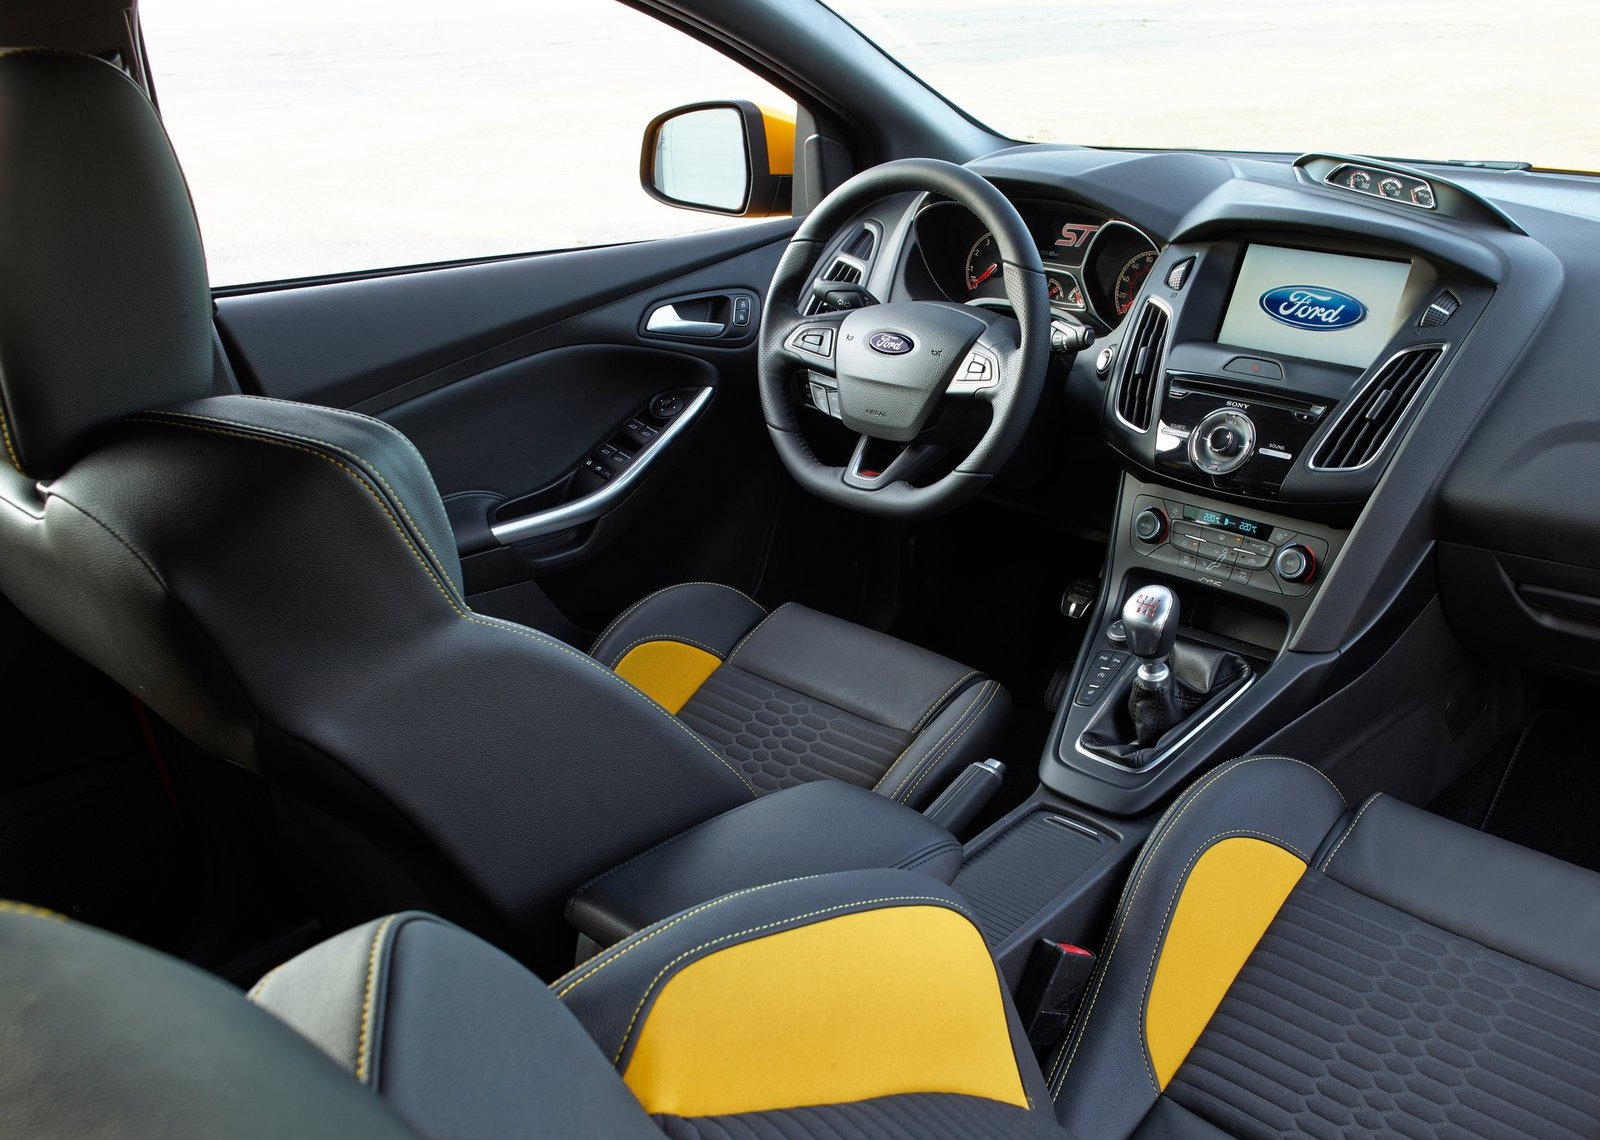 New 2015 Ford Focus ST Pricing Revealed for the UK - autoevolution